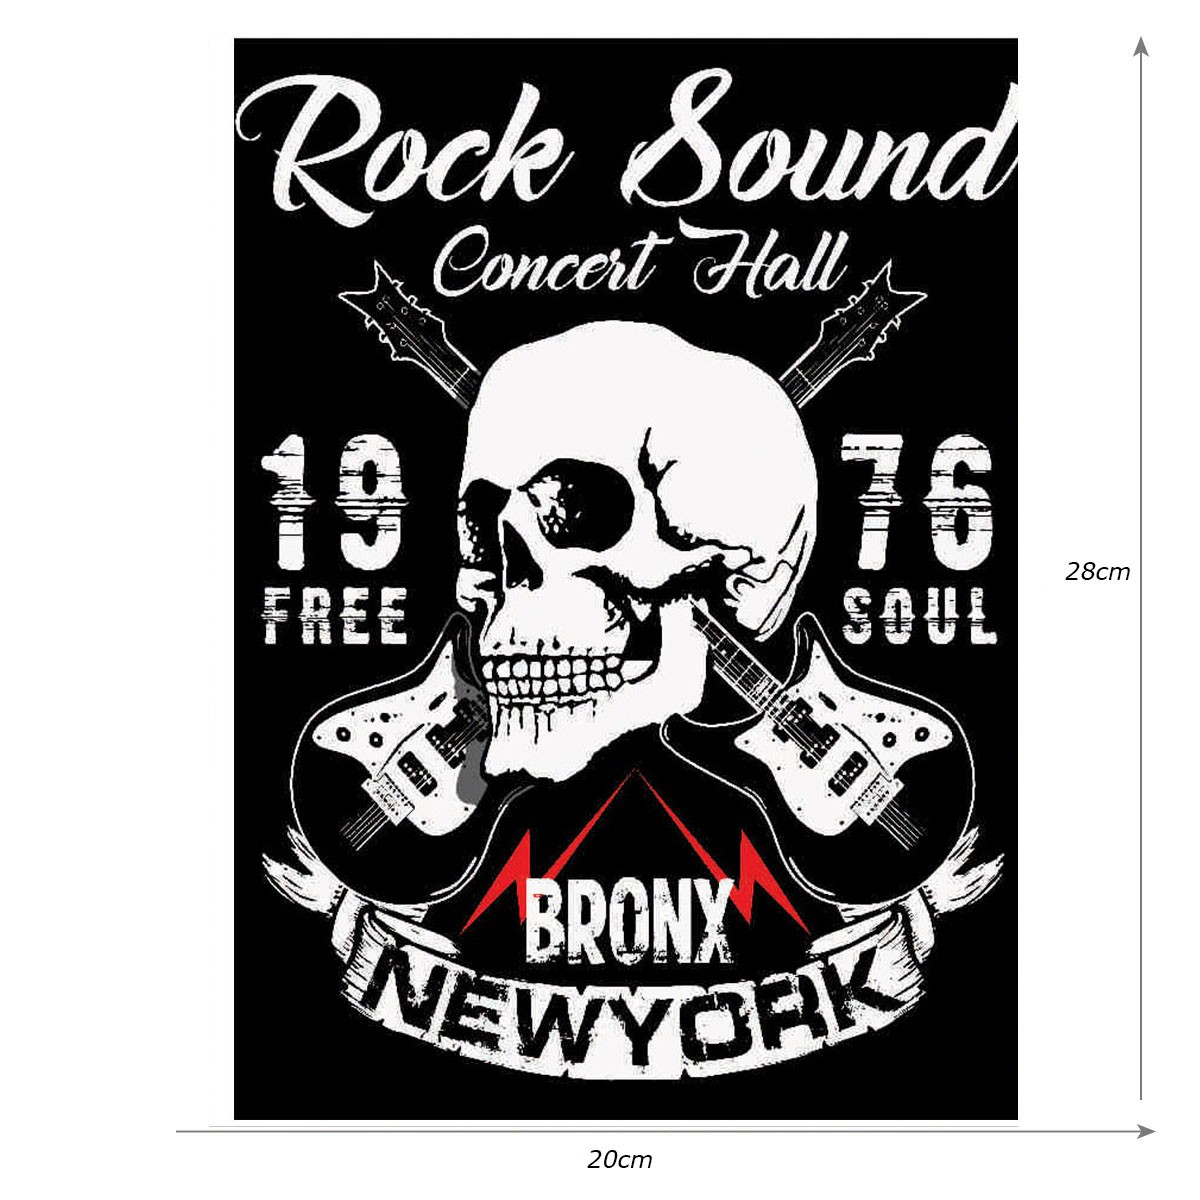 Placa Quadro Decorativo Rock Sound Parede ou Portas 20x28cm